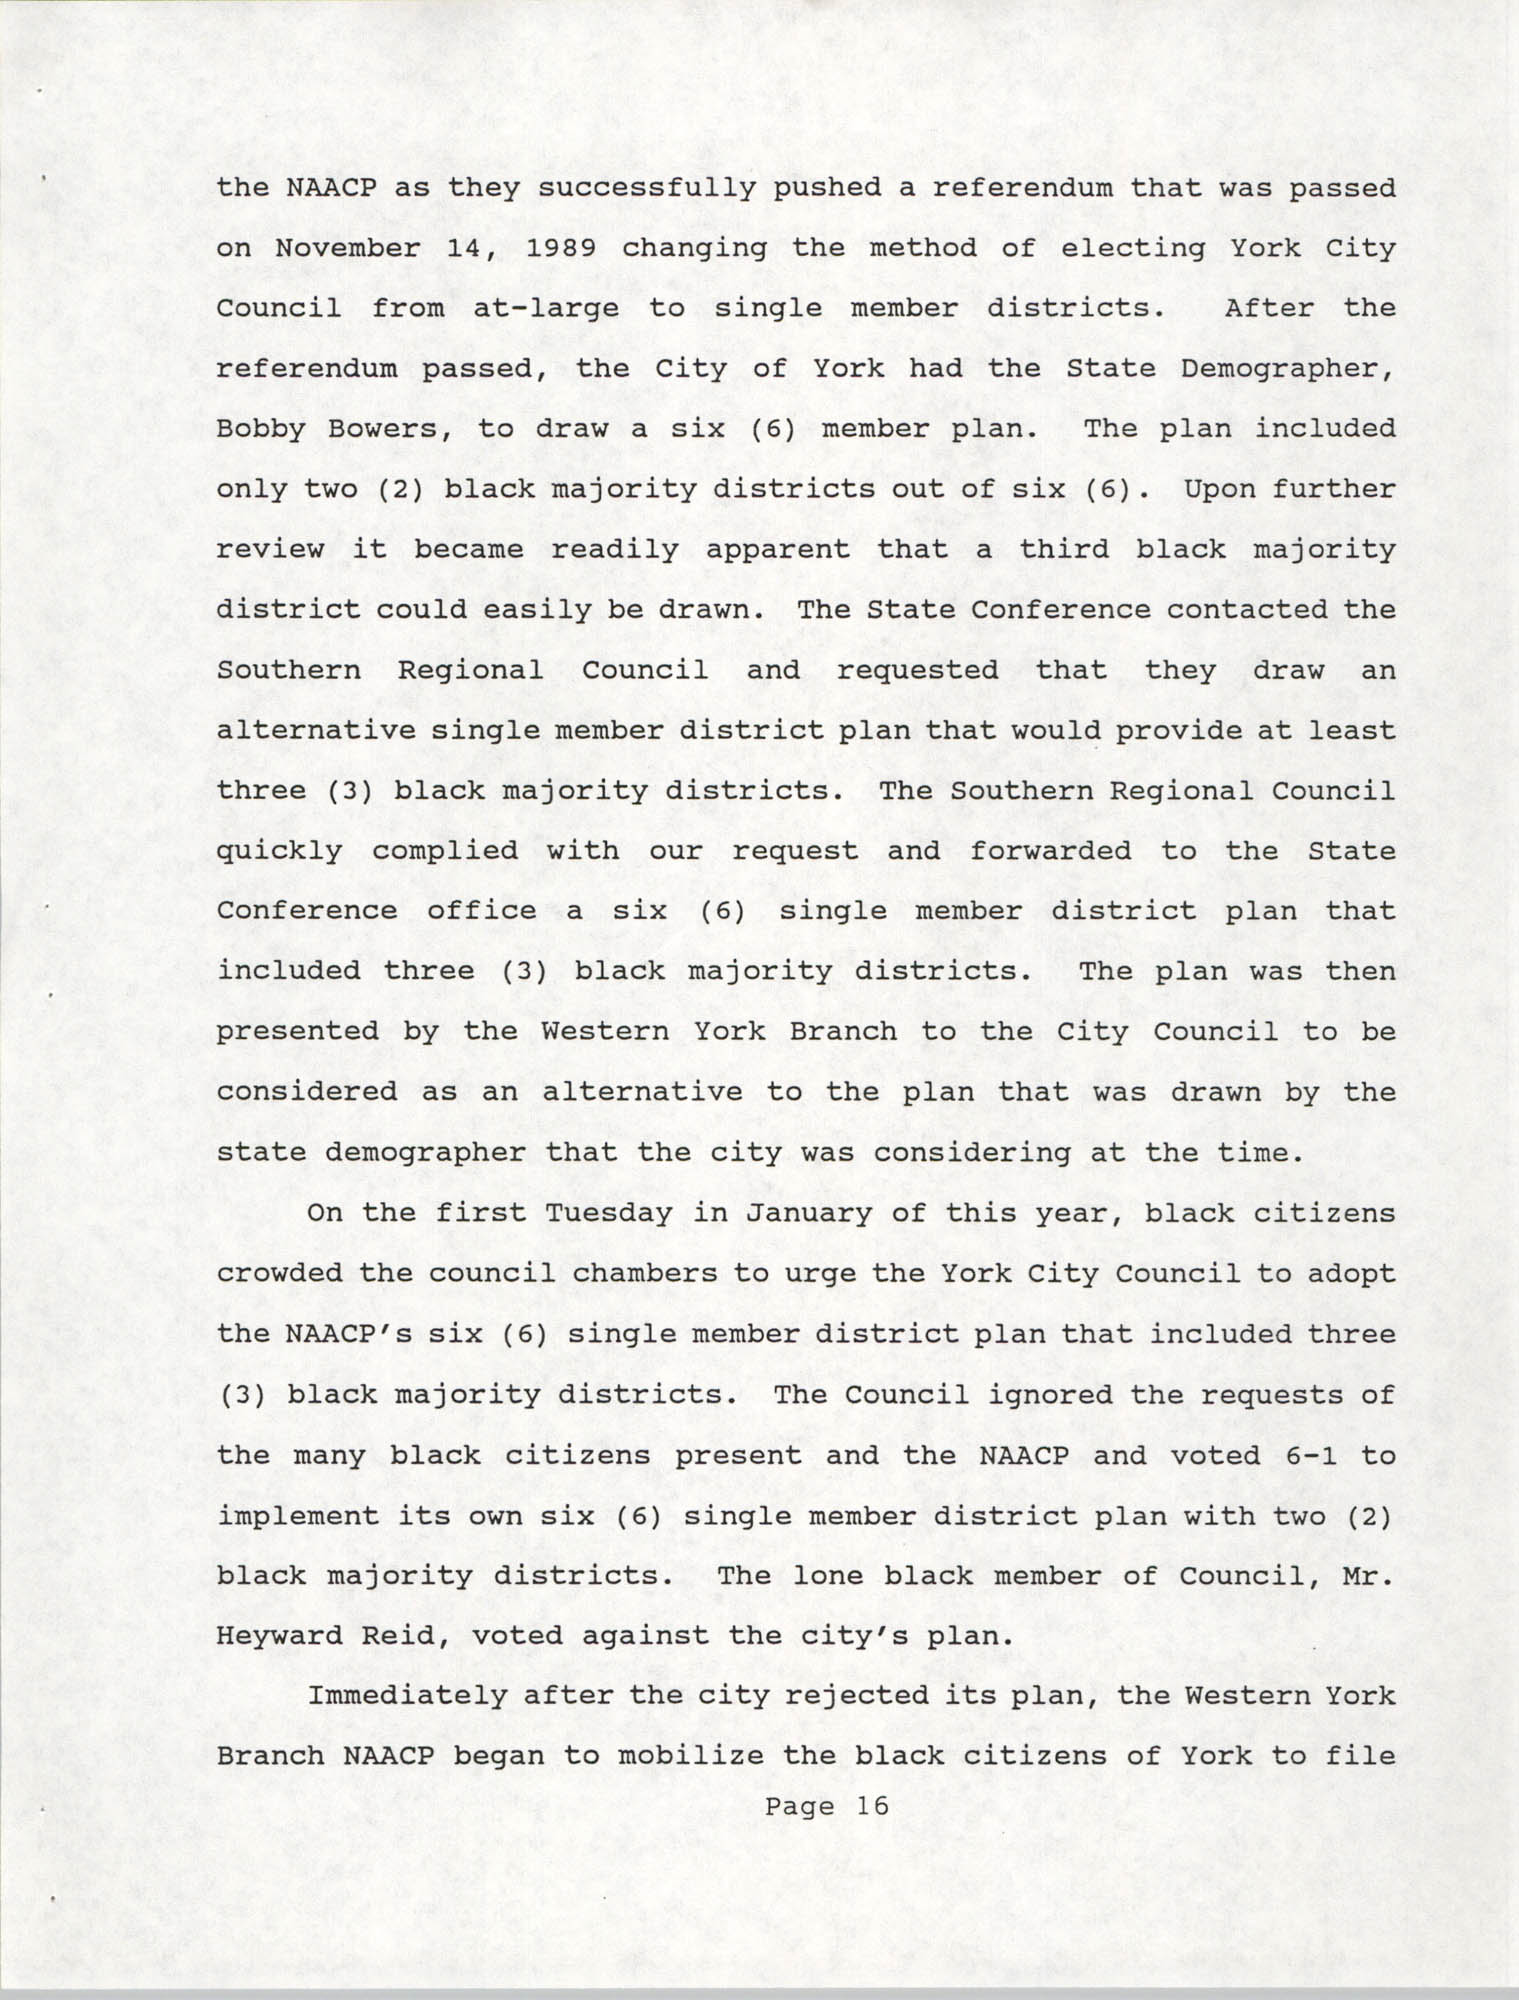 South Carolina Conference of Branches of the NAACP, 1990 Annual Report, Part One, Page 16